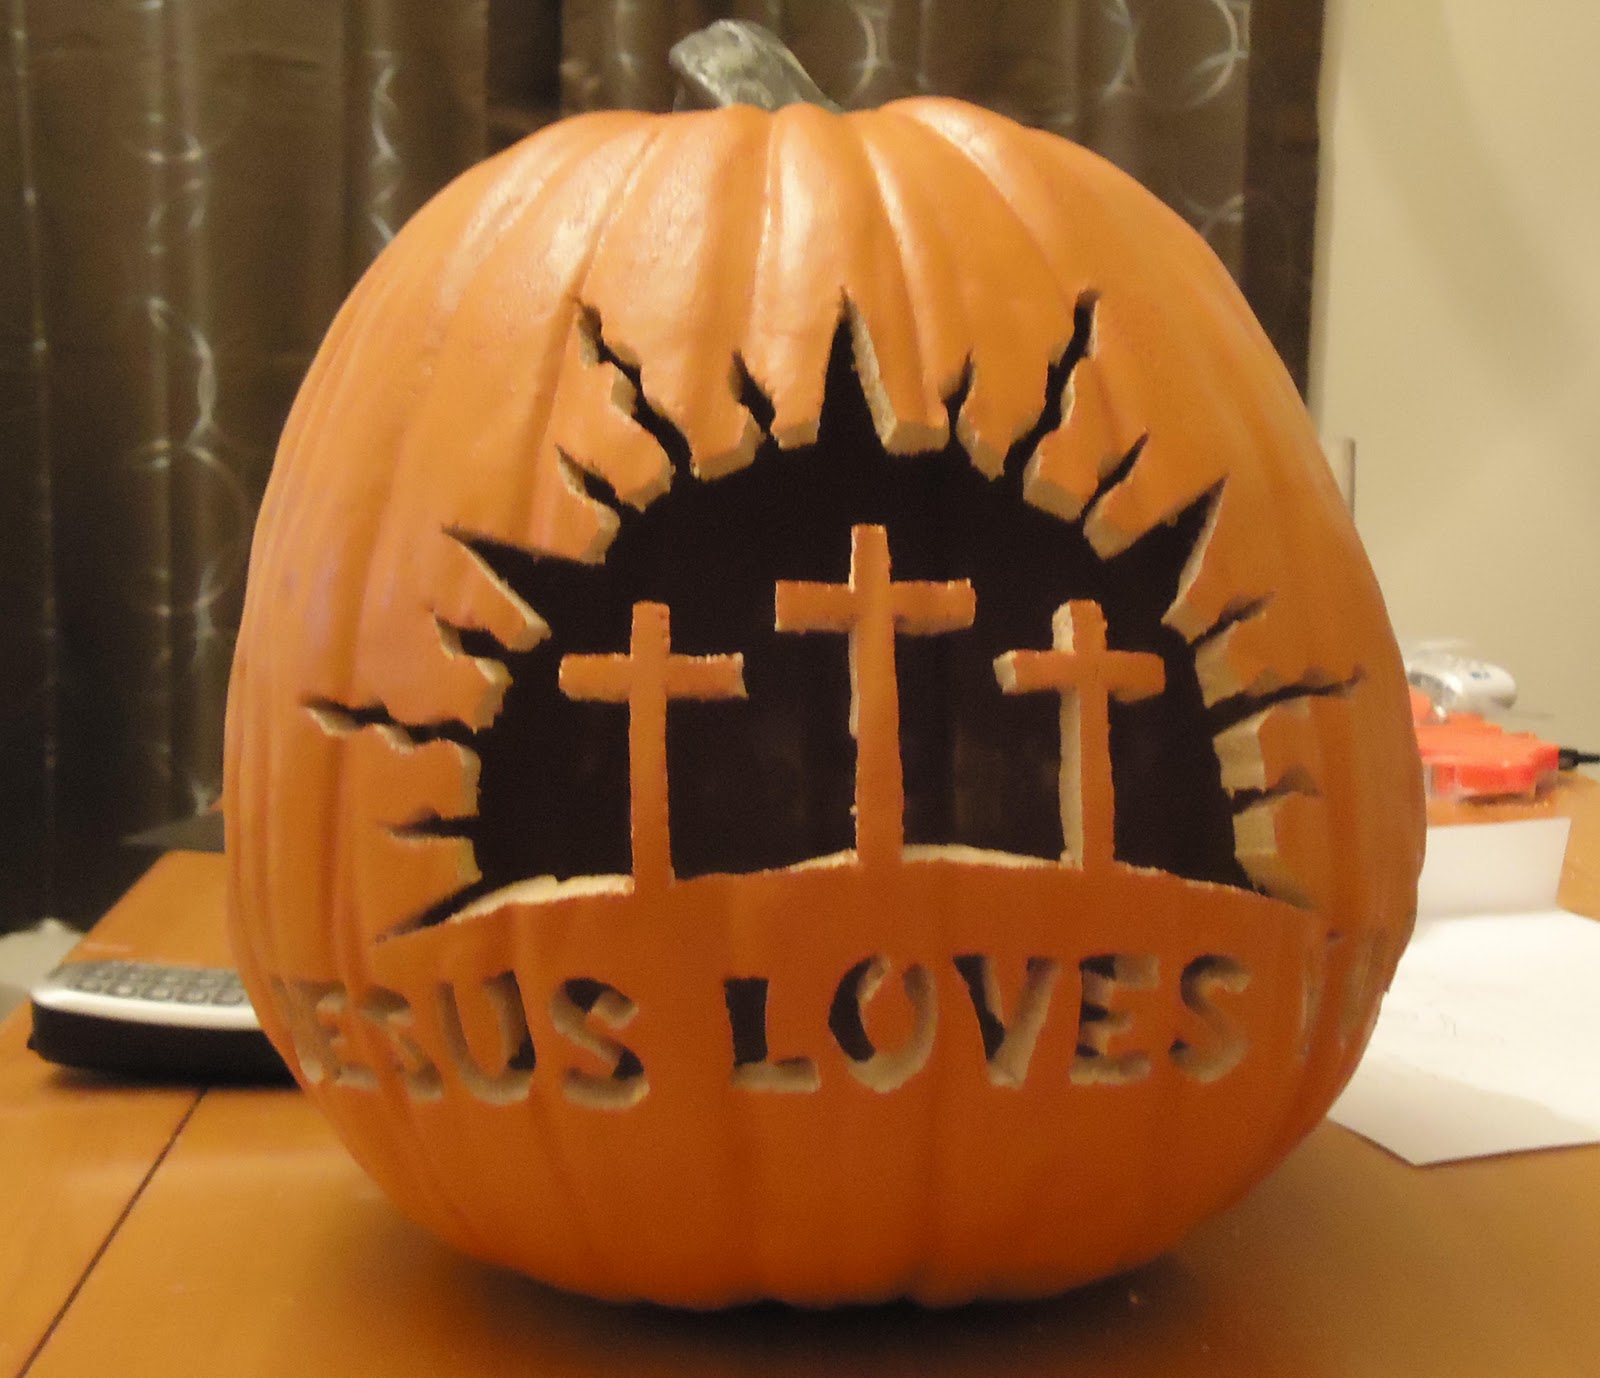 Snips n snails jesus loves you jack o lantern